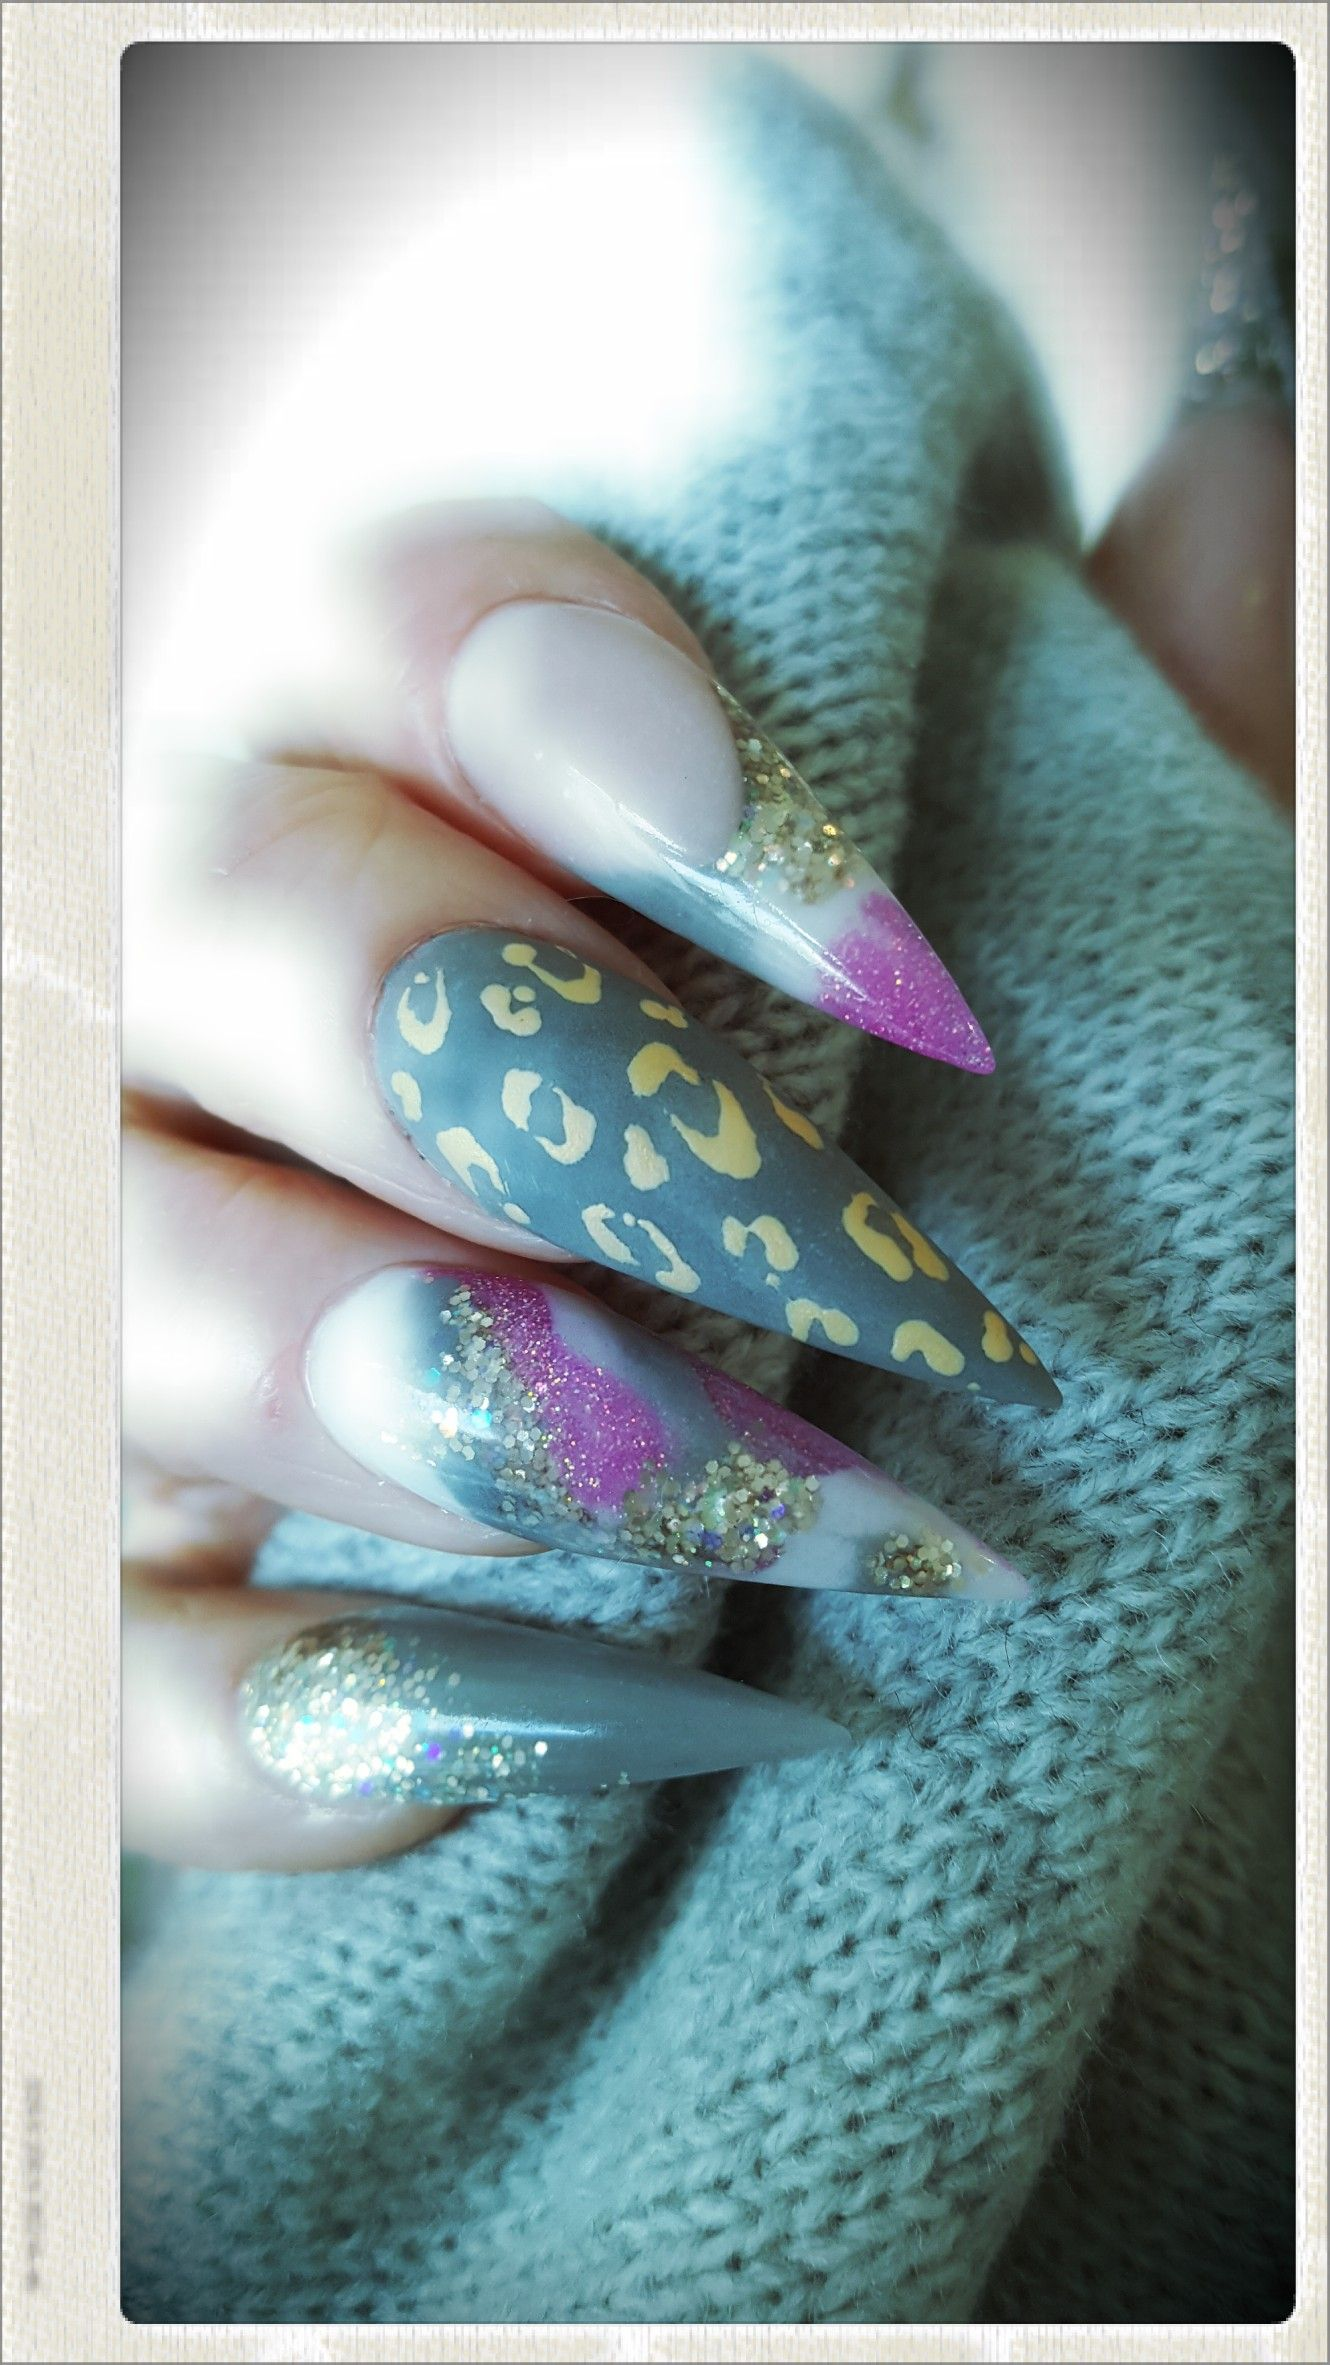 Acrylic Nails. Glam and Glits Private Island, Afterglow. Tammy ...